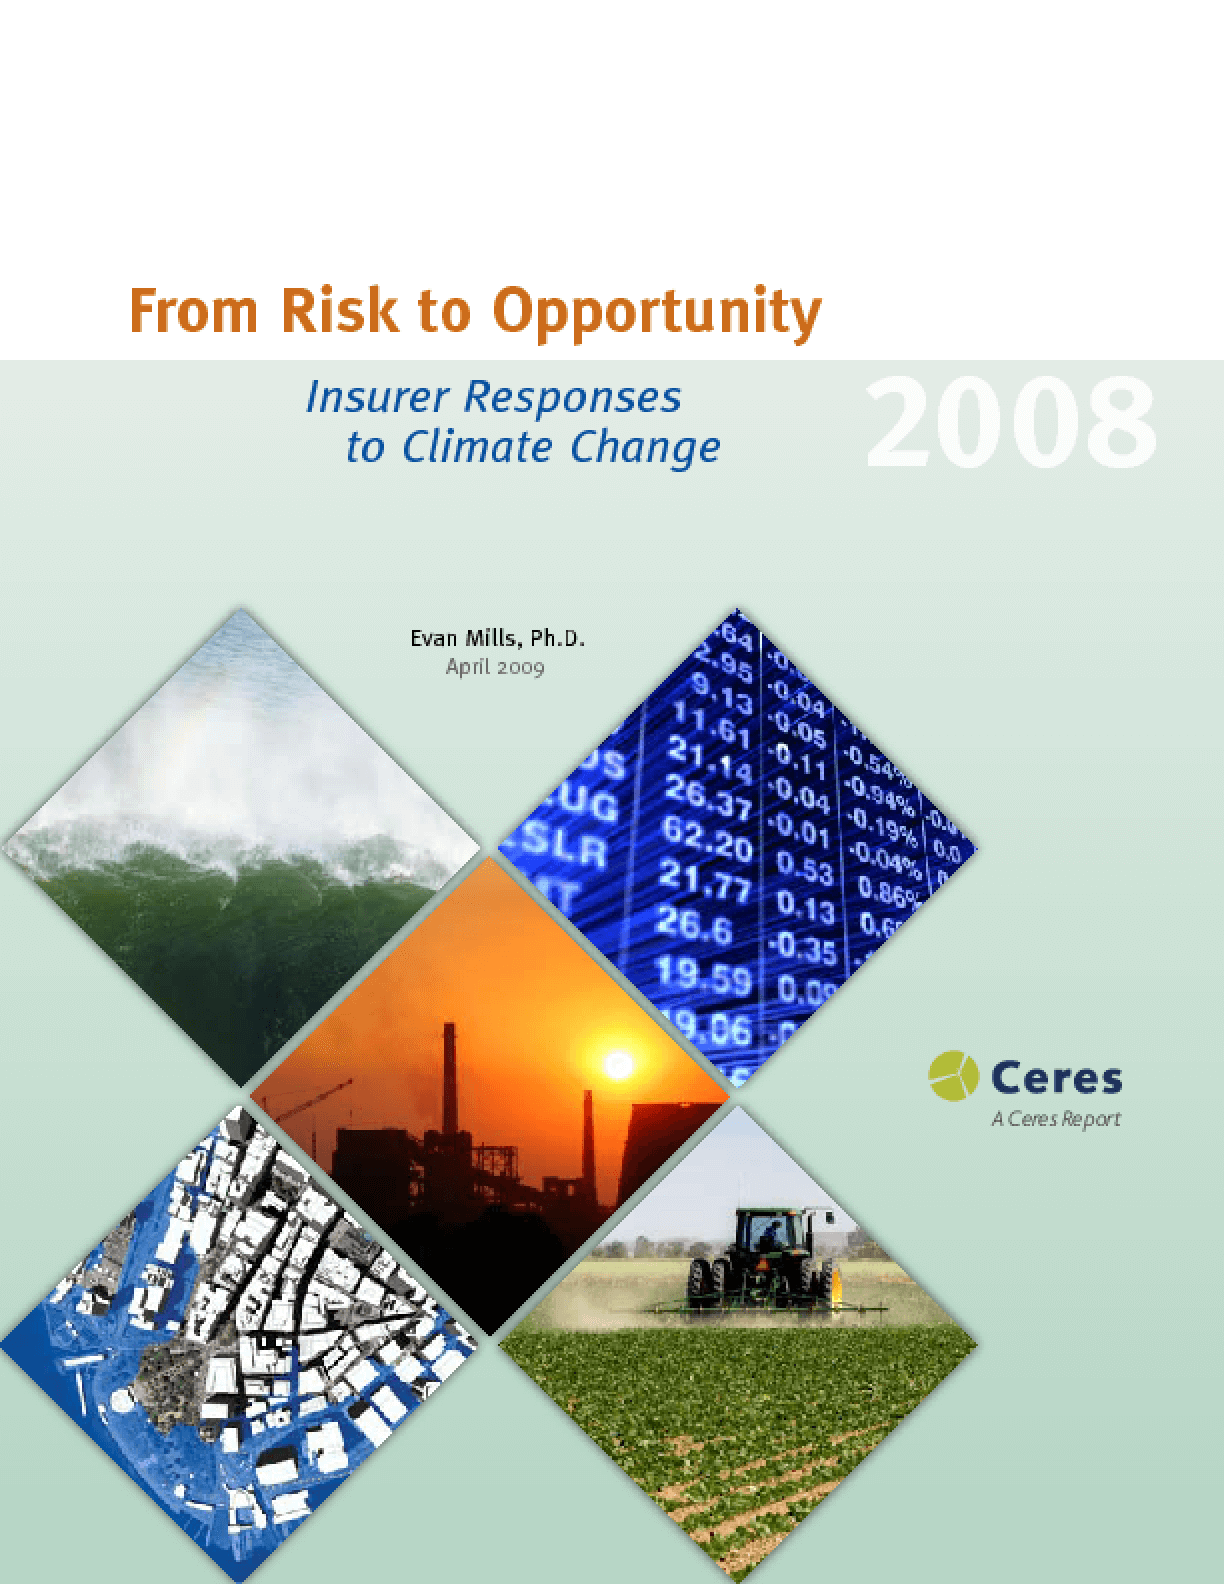 From Risk to Opportunity: Insurer Responses to Climate Change